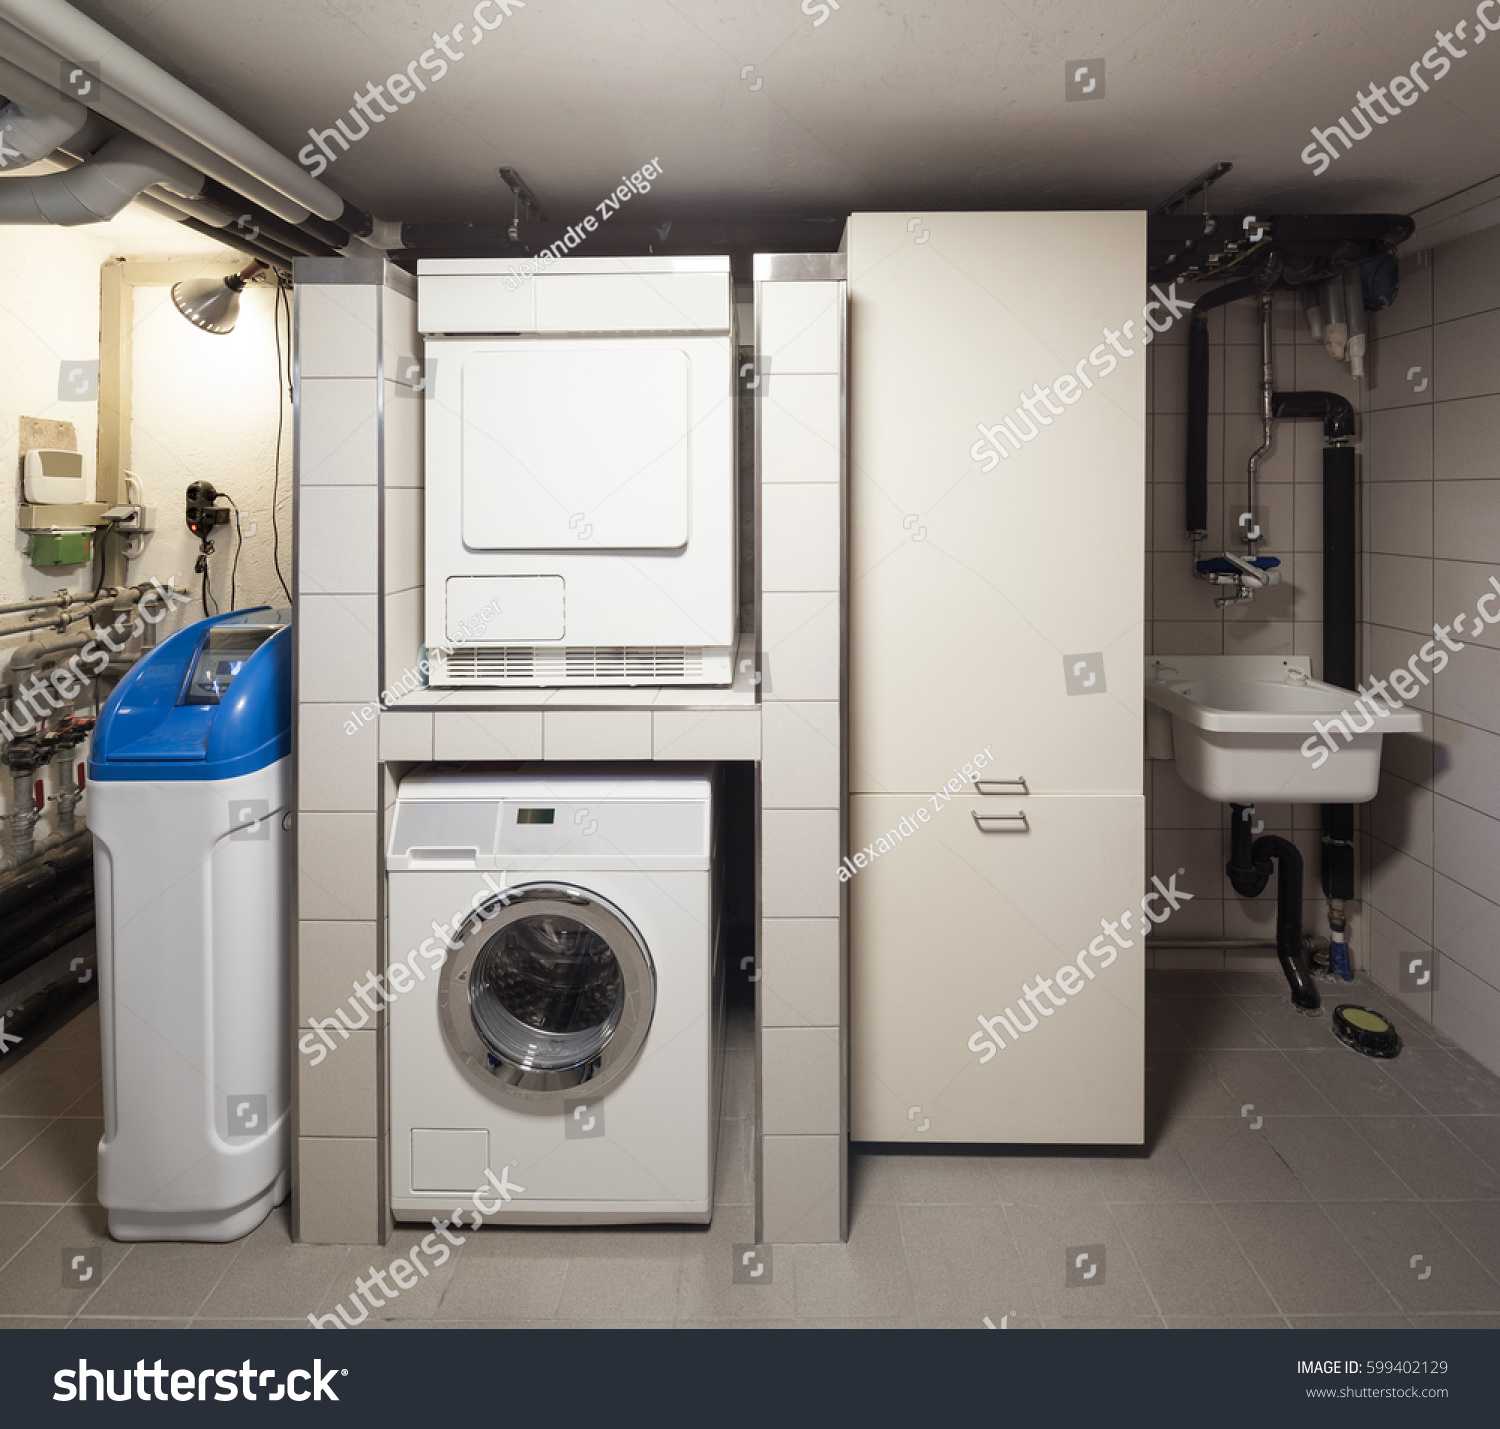 Basement Of An Apartment Block With Washing Machine For Common Use